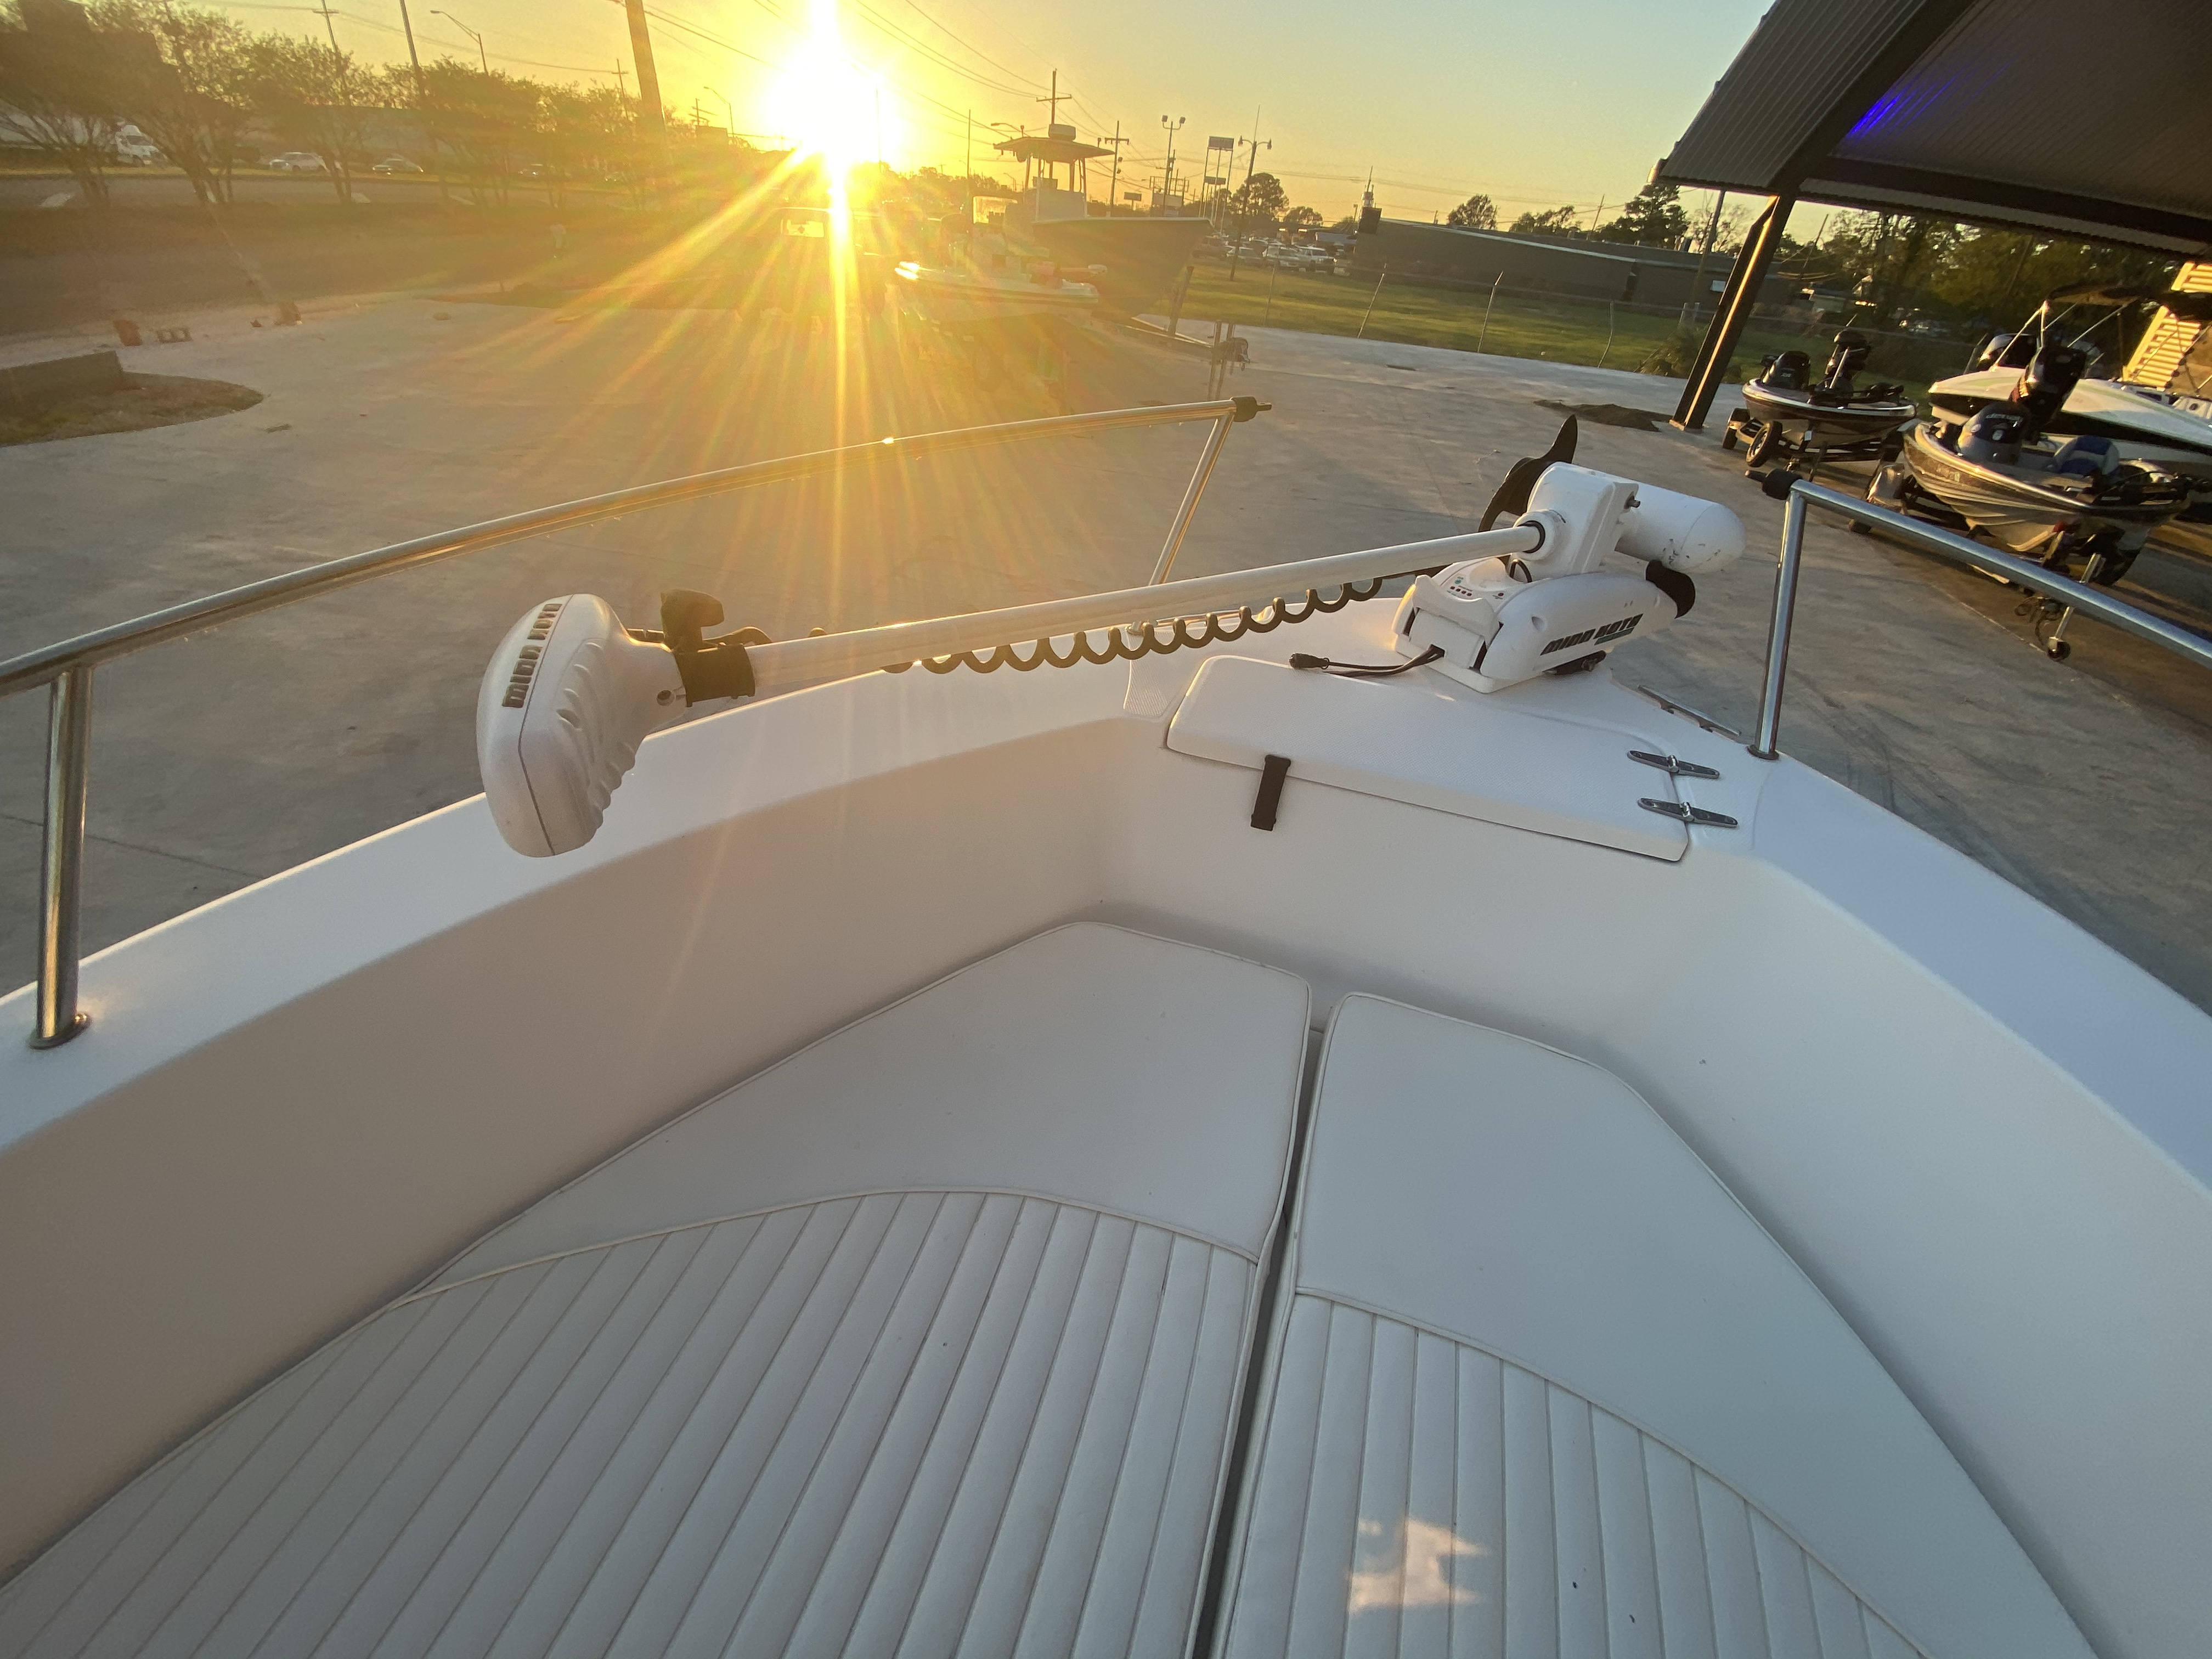 2007 Sea Hunt boat for sale, model of the boat is 207 Triton & Image # 20 of 28